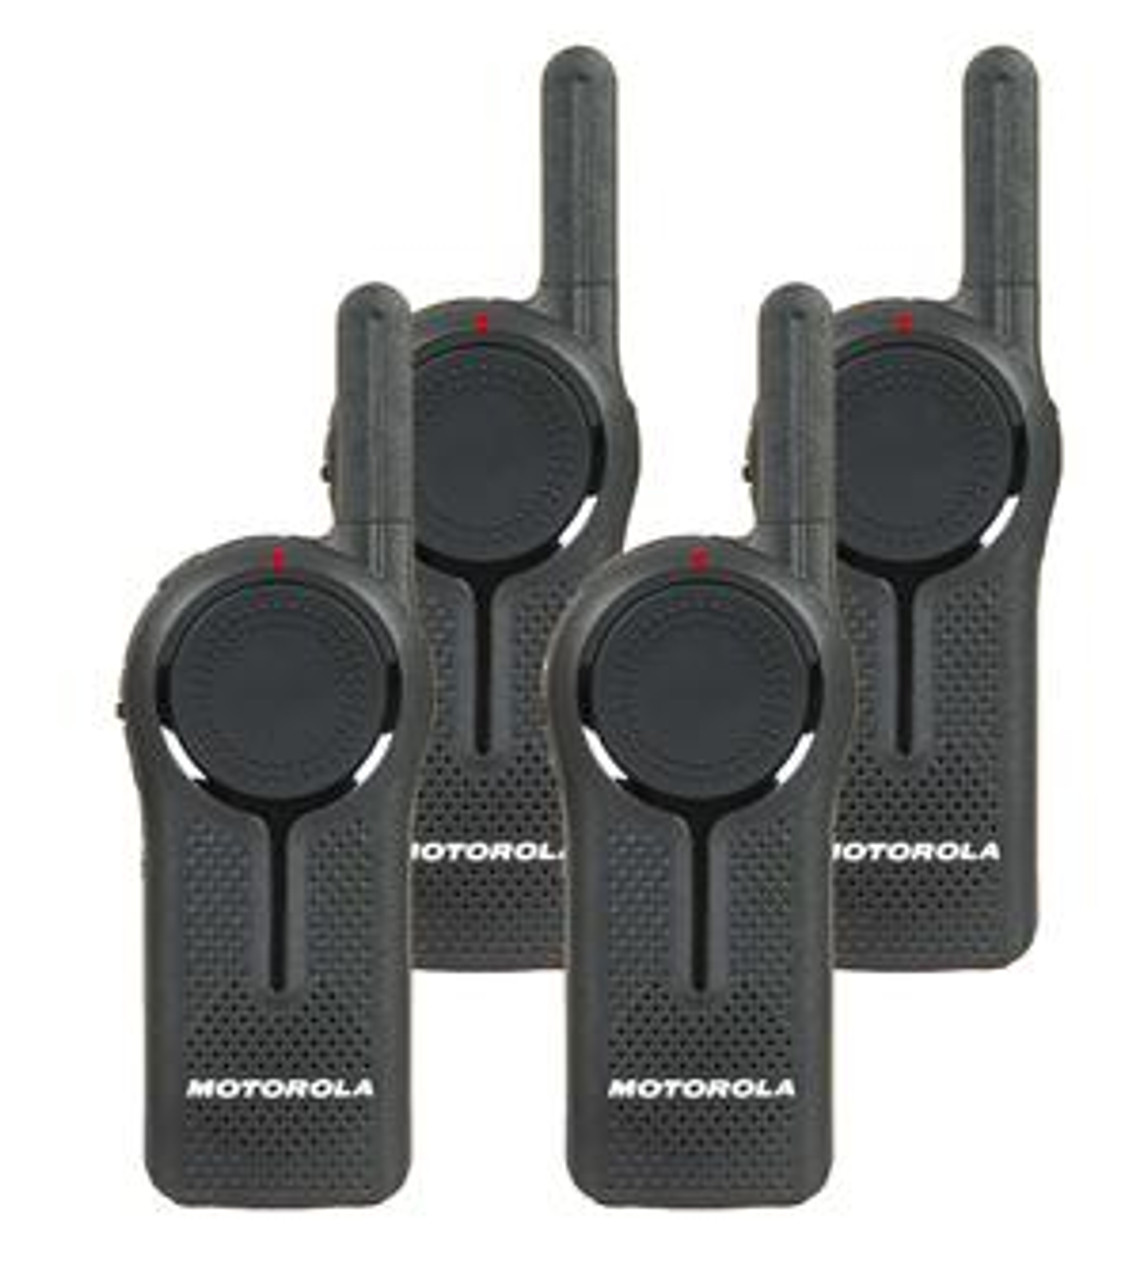 Motorola DLR1020 Digital Two Way Radio Pack of 4